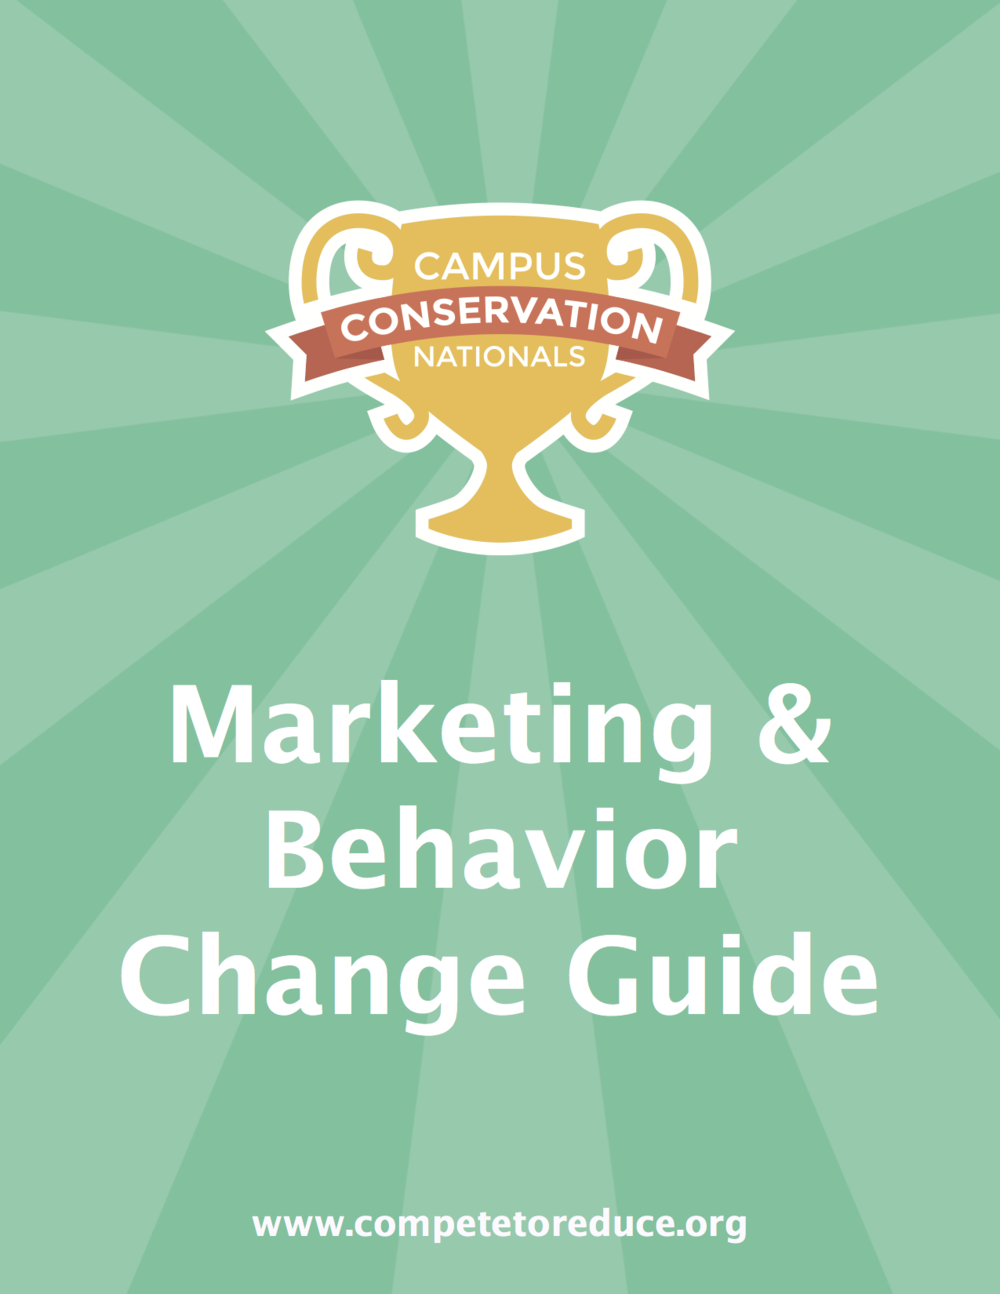 Marketing & Behavior Change Guide